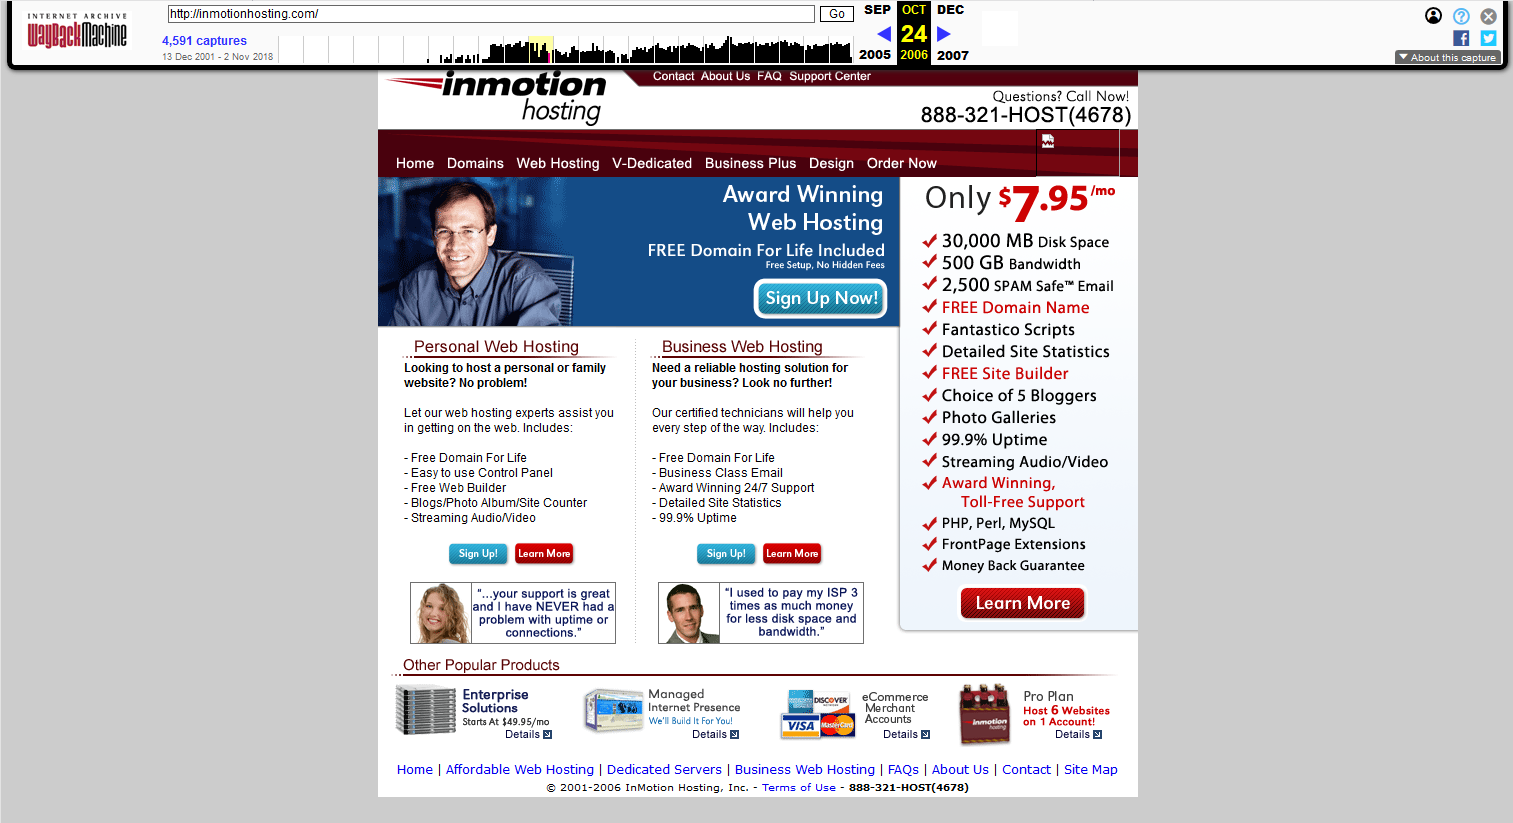 InMotionHosting.com archive from October 2006